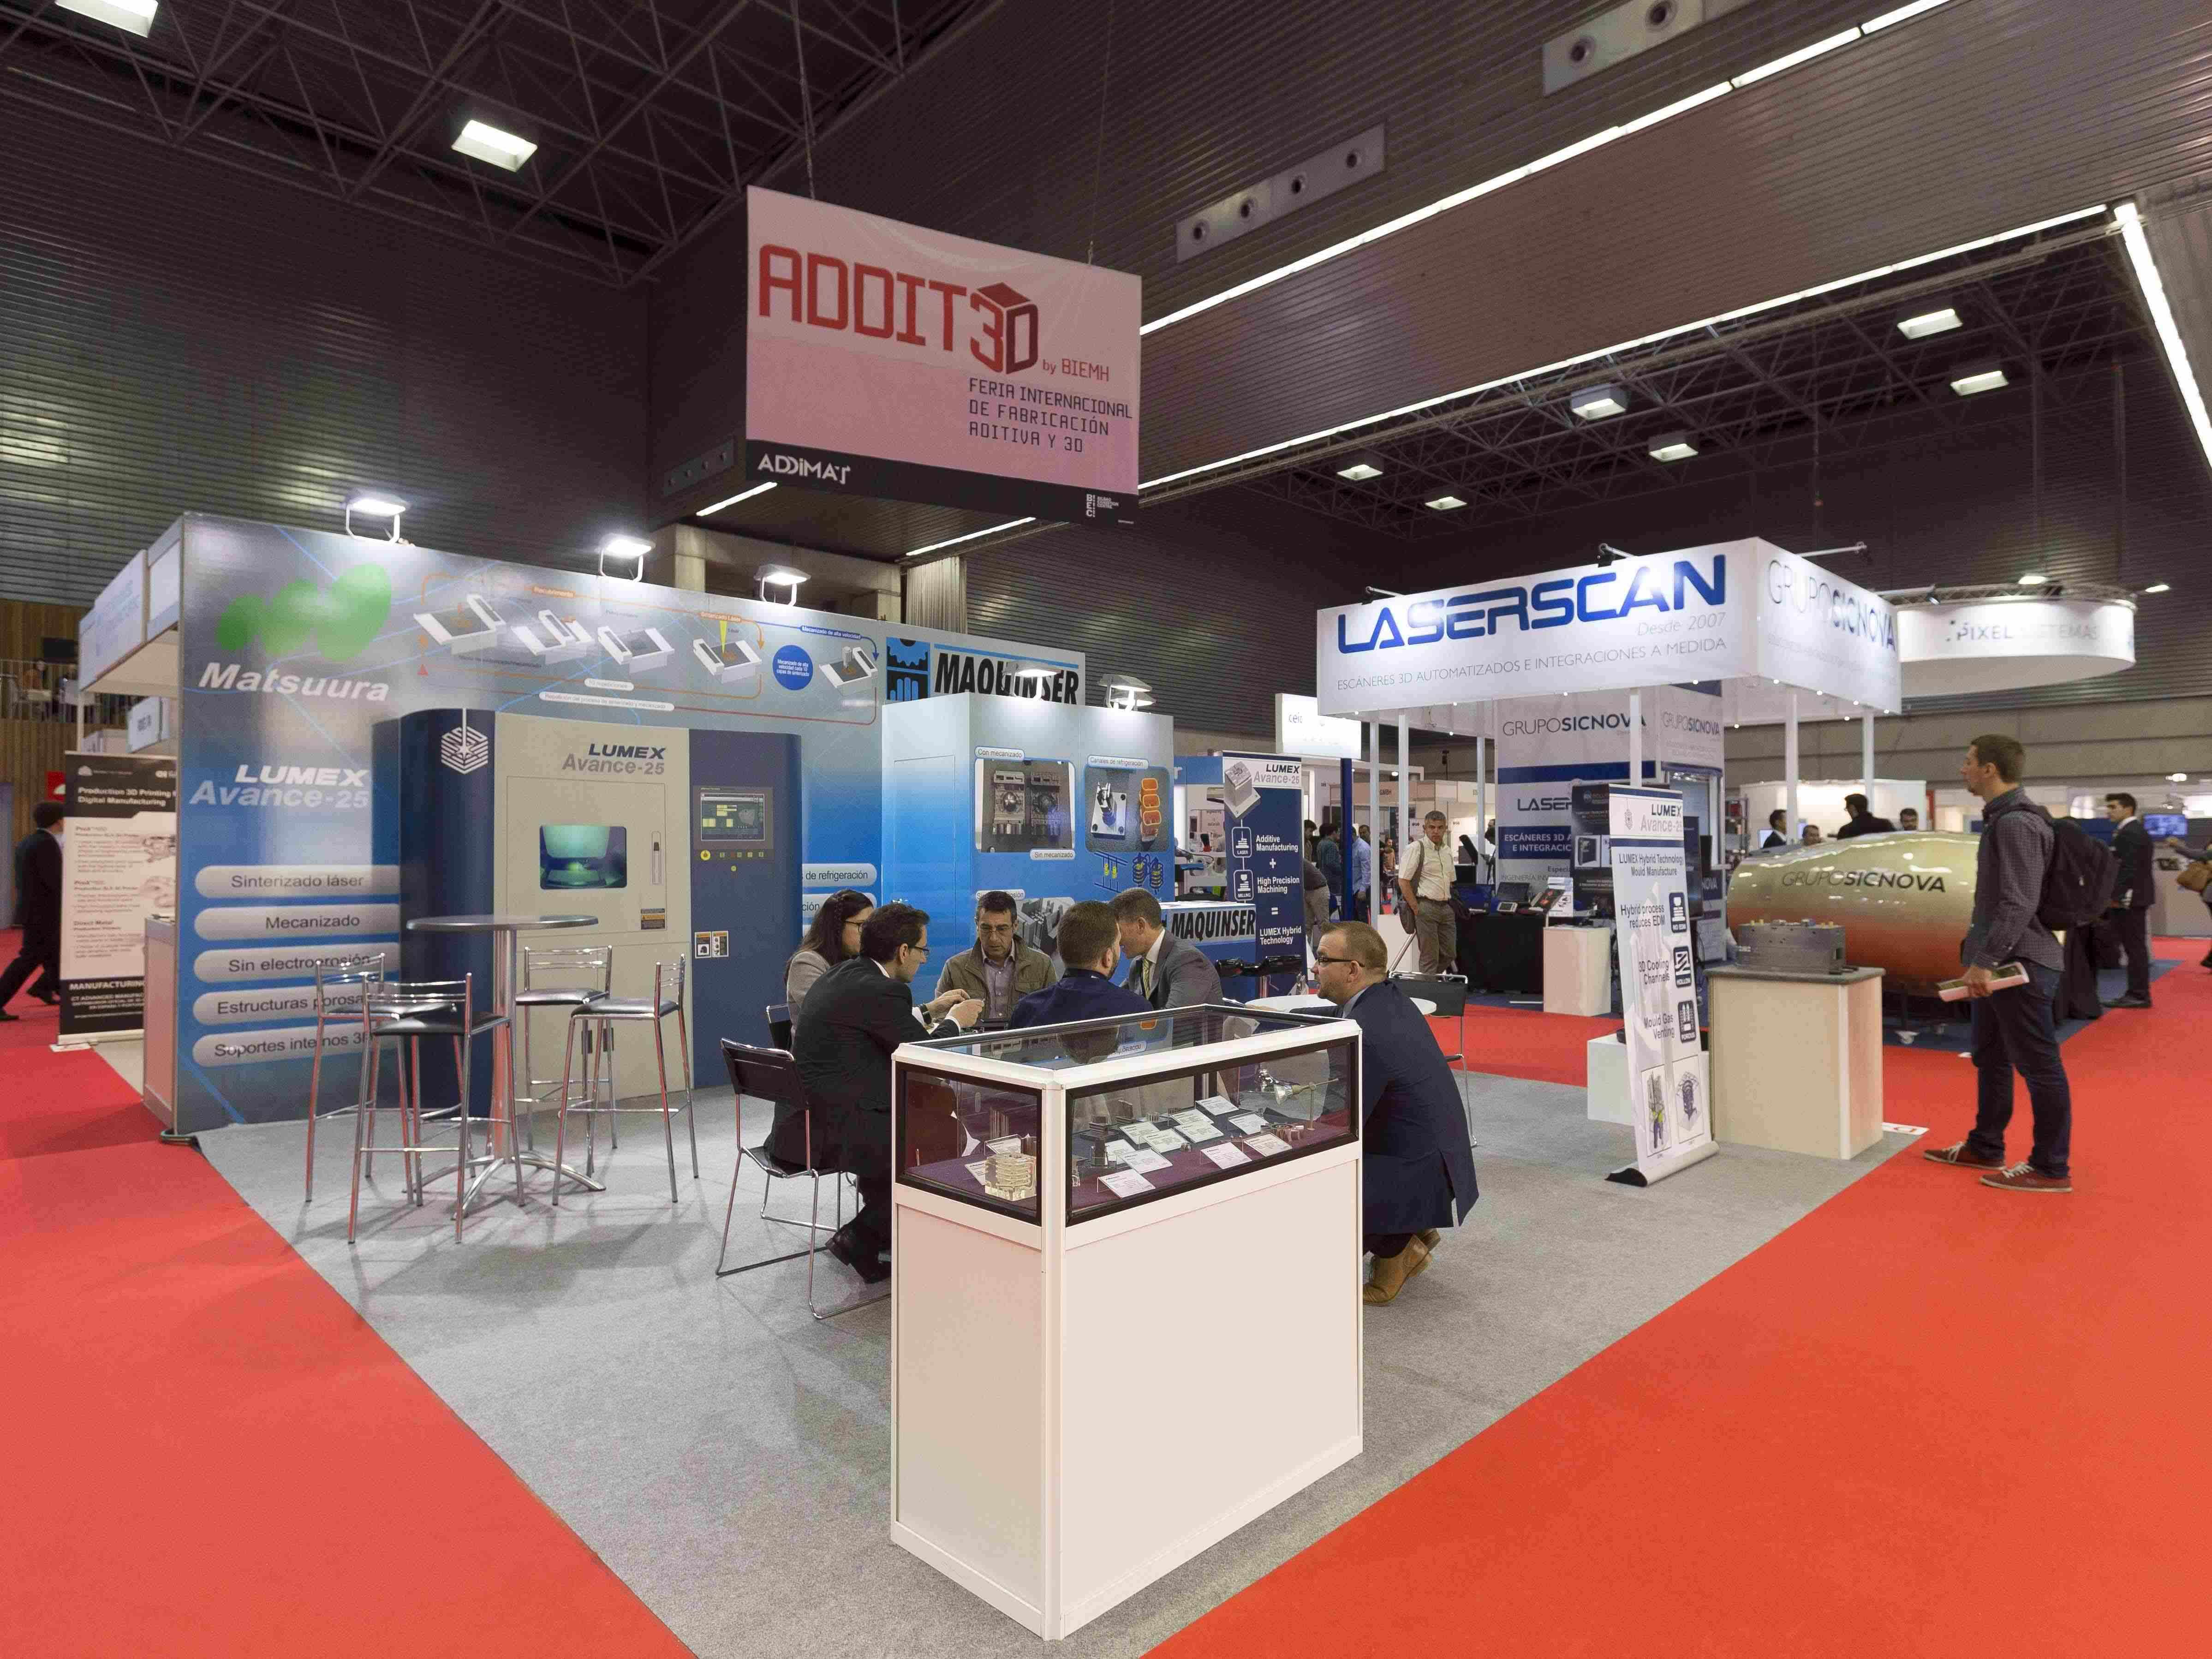 ADDITIVE TALKS, the latest trends in additive manufacturing at the BEC, on 31 MAY and 1 JUNE